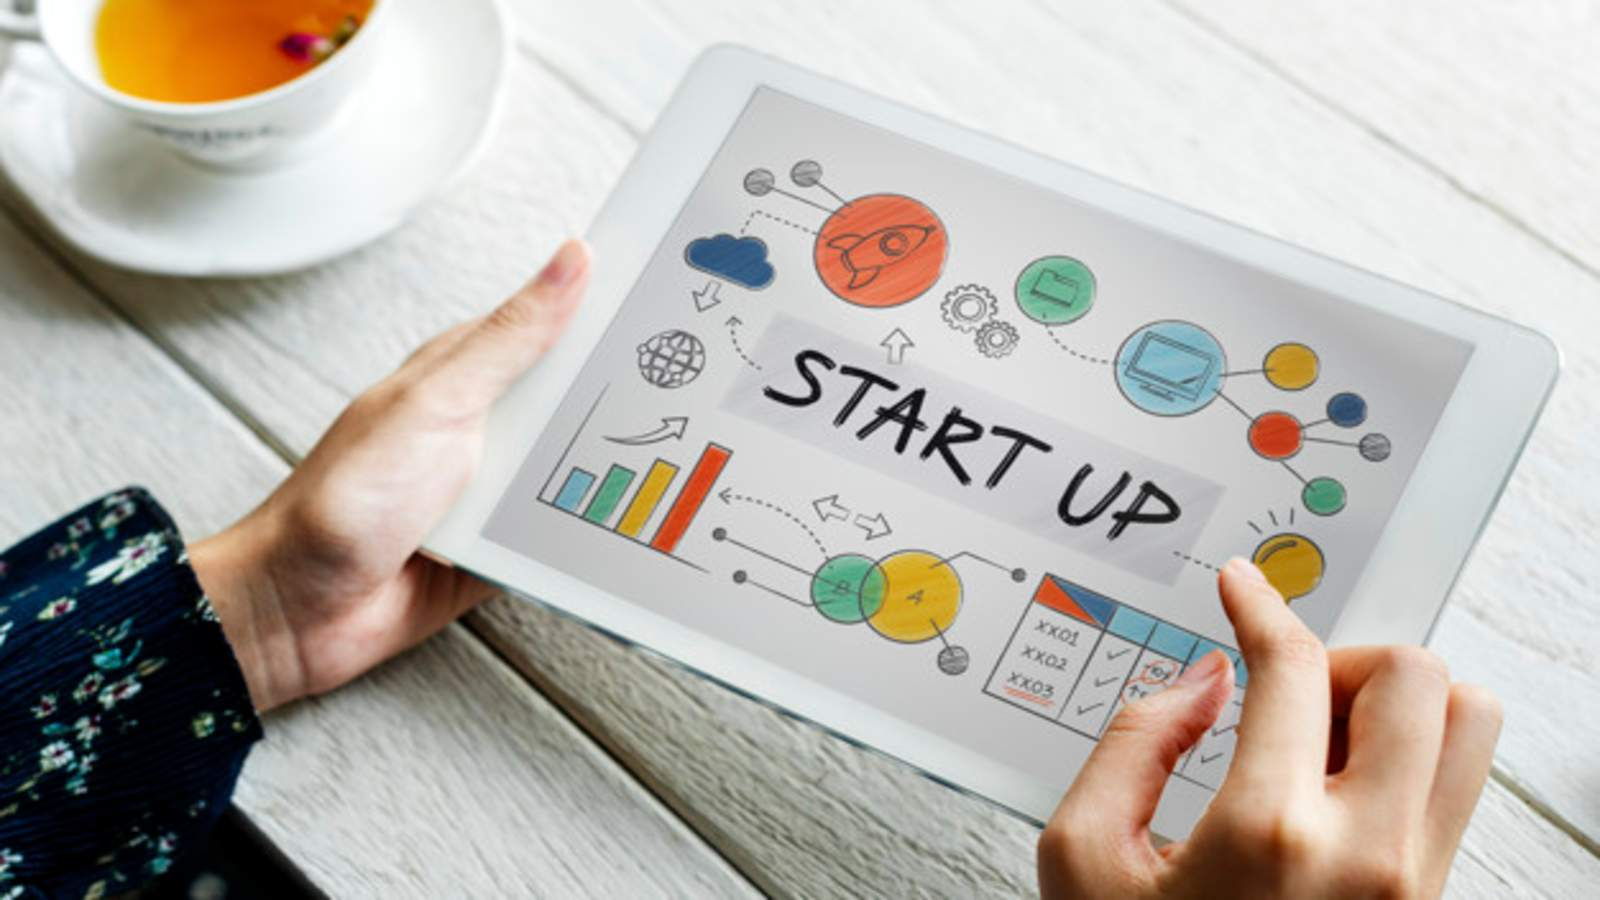 Bisnis start up digital